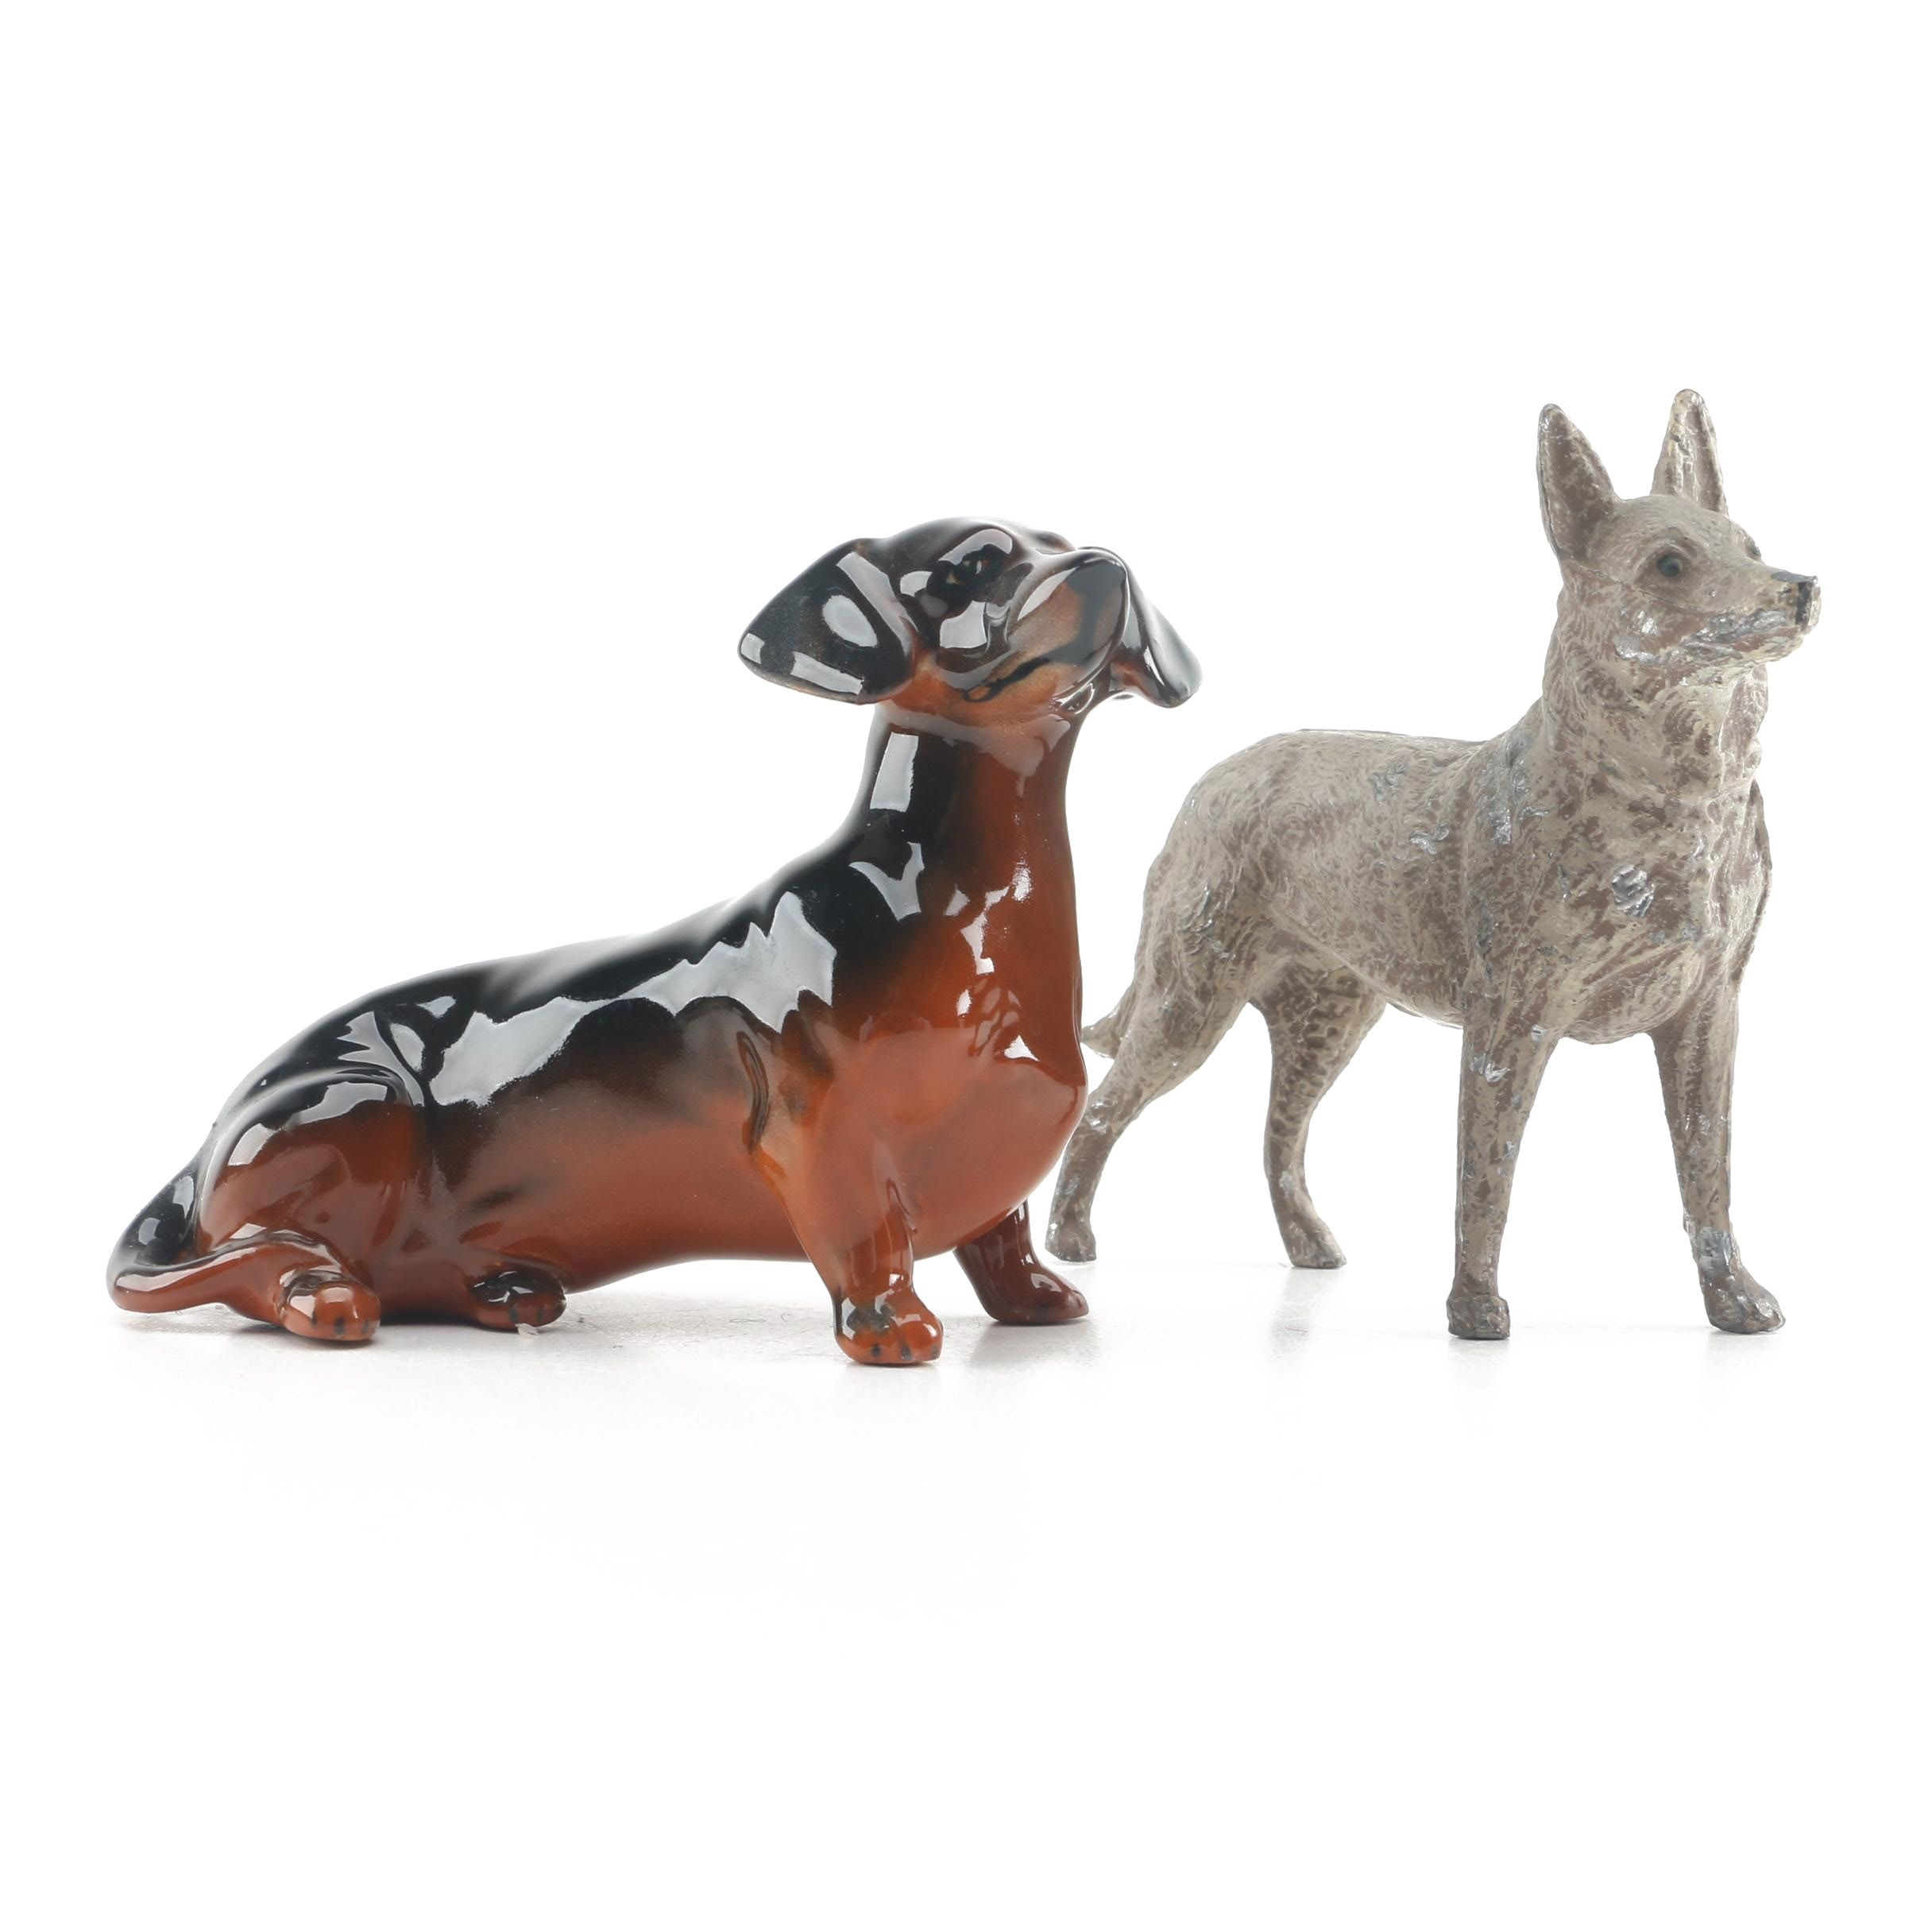 Beswick Porcelain Dachshund Figurine and Metal Shepherd Figurine